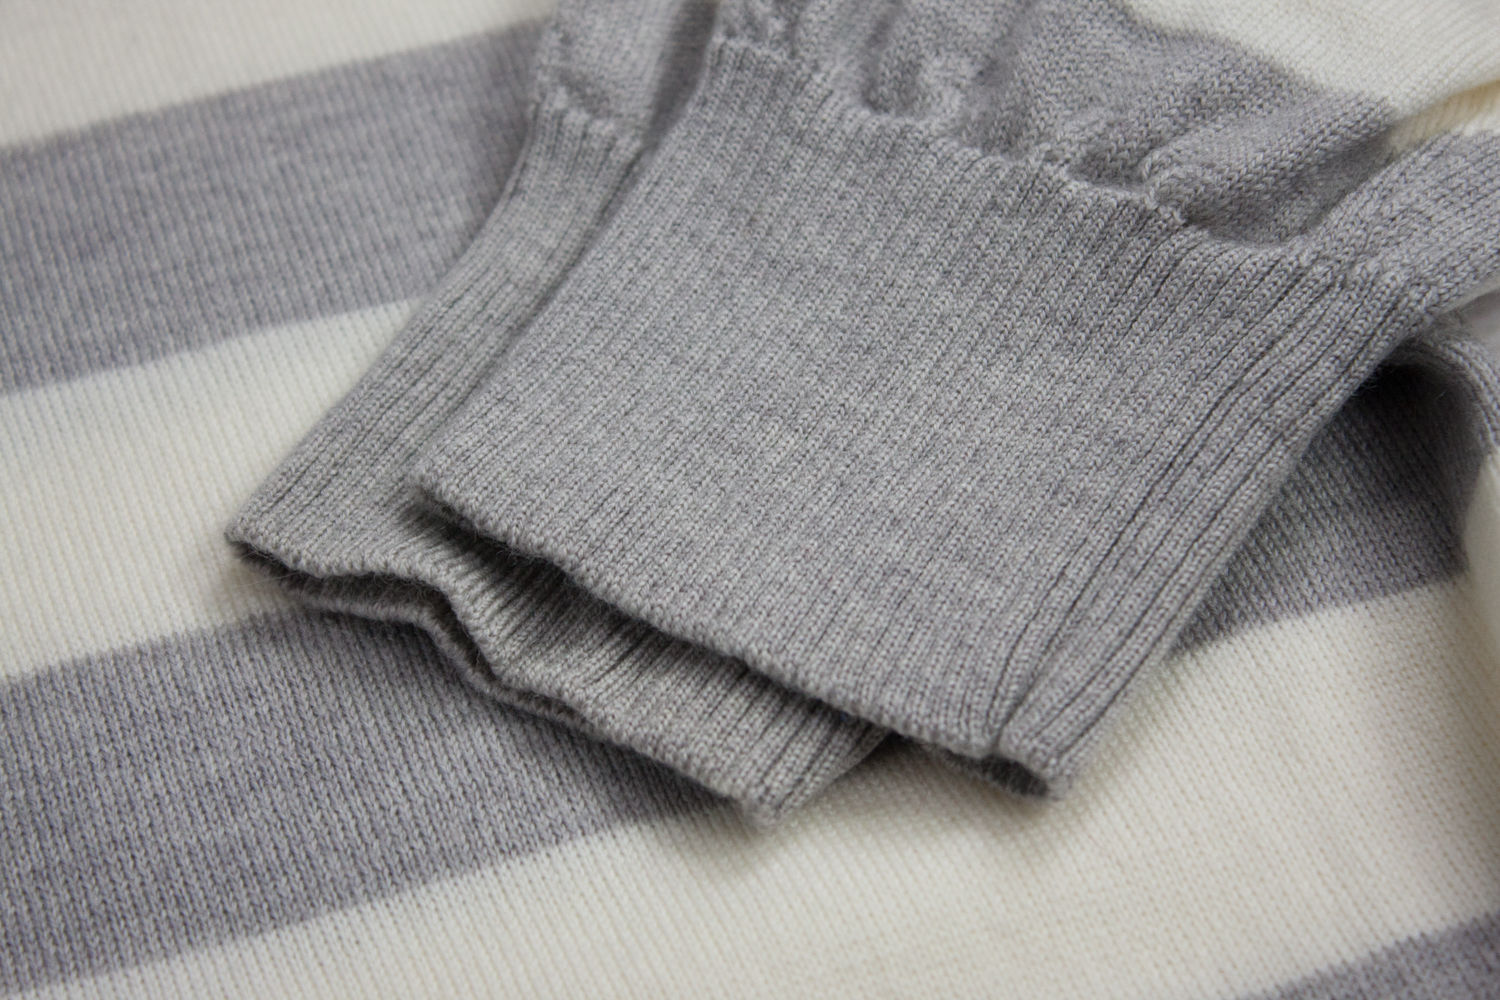 J. Lindeberg Men's Gray Thin Merino Wool Jumper Sweater, L - secondfirst